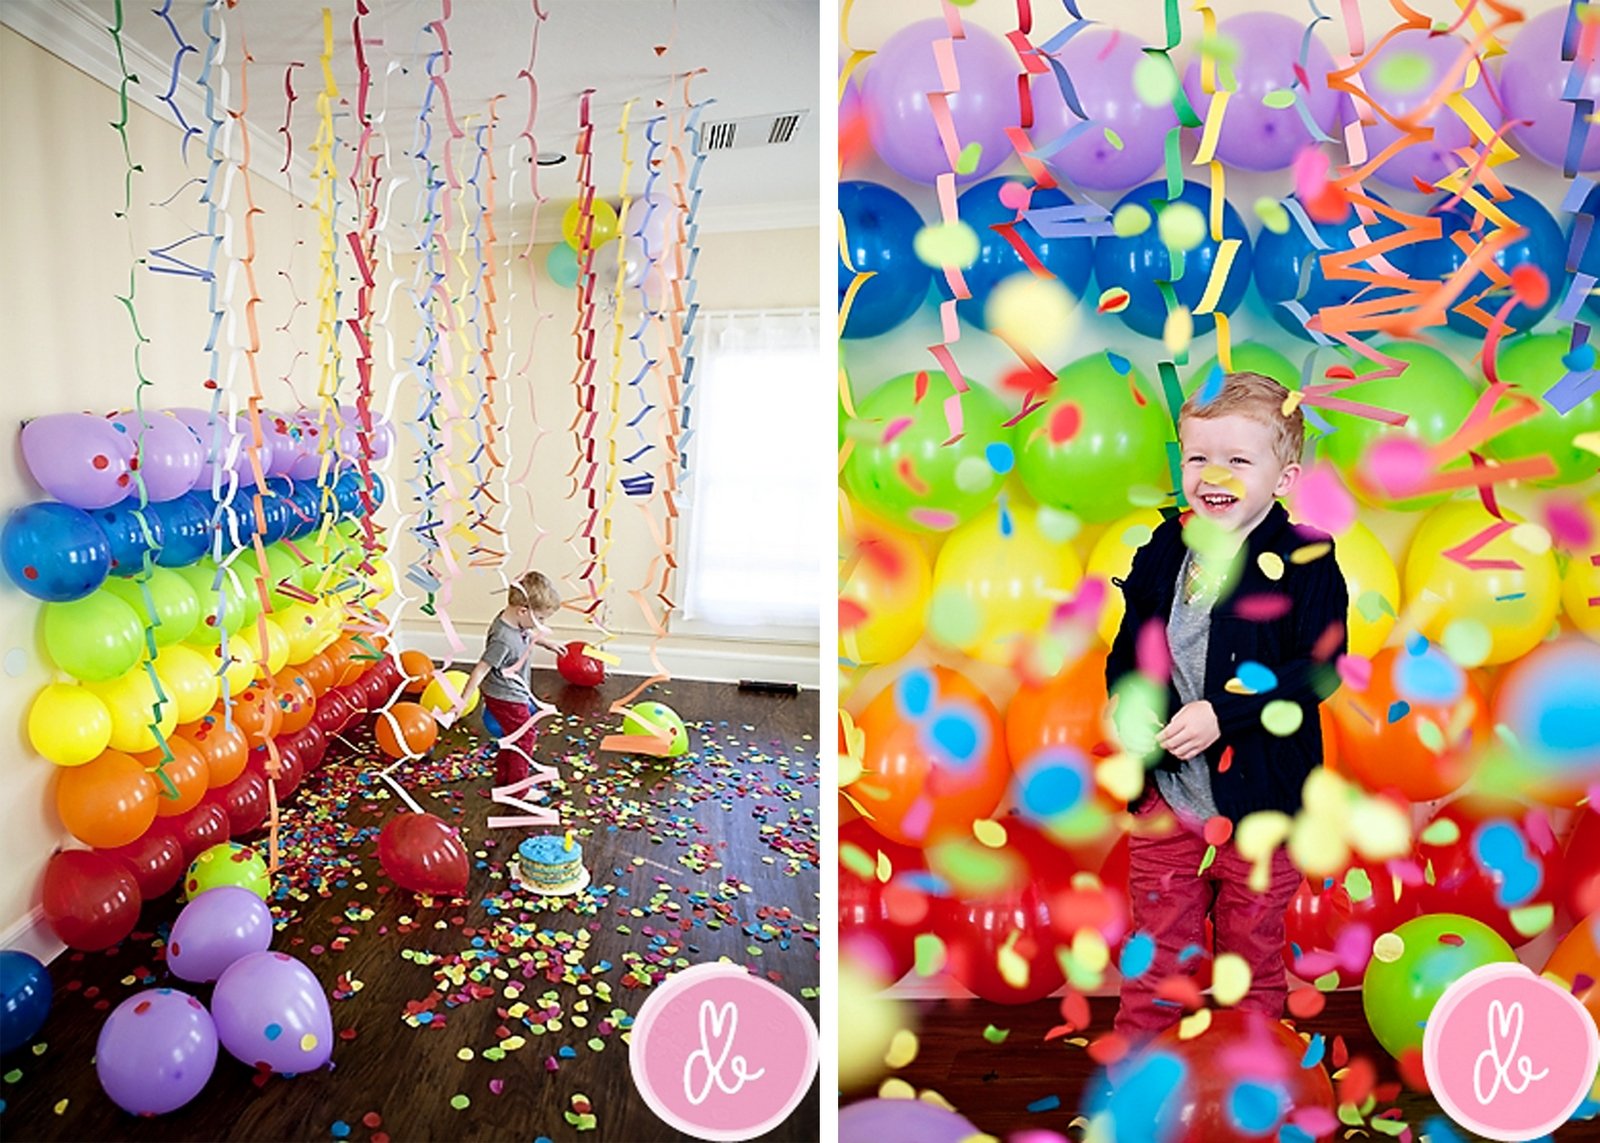 10 Trendy Indoor Birthday Party Ideas For 10 Year Old Boys themes birthday indoor birthday party ideas for 10 year olds in 2021